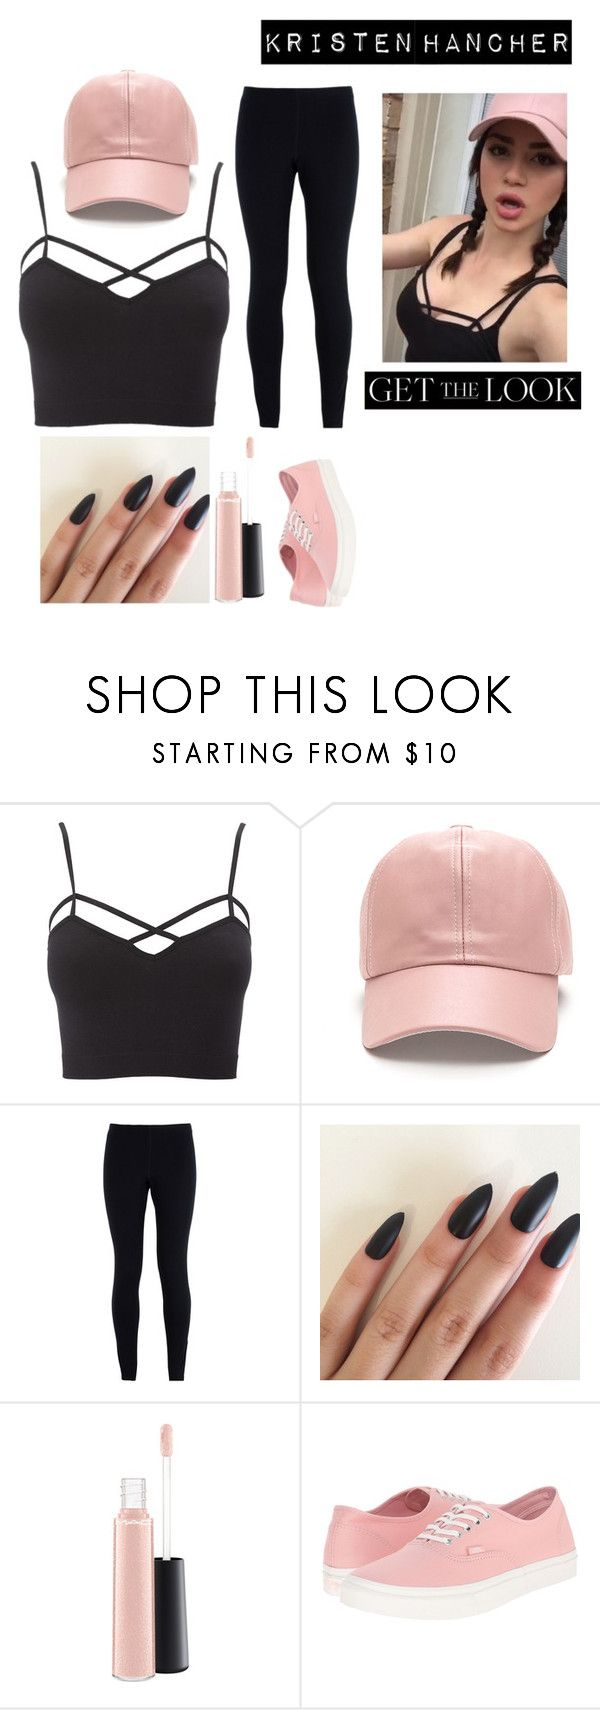 """Kristen Hancher"" by sarah-muth ❤ liked on Polyvore featuring Charlotte Russe, NIKE, MAC Cosmetics, Vans, kristenhancher and plus size clothing"